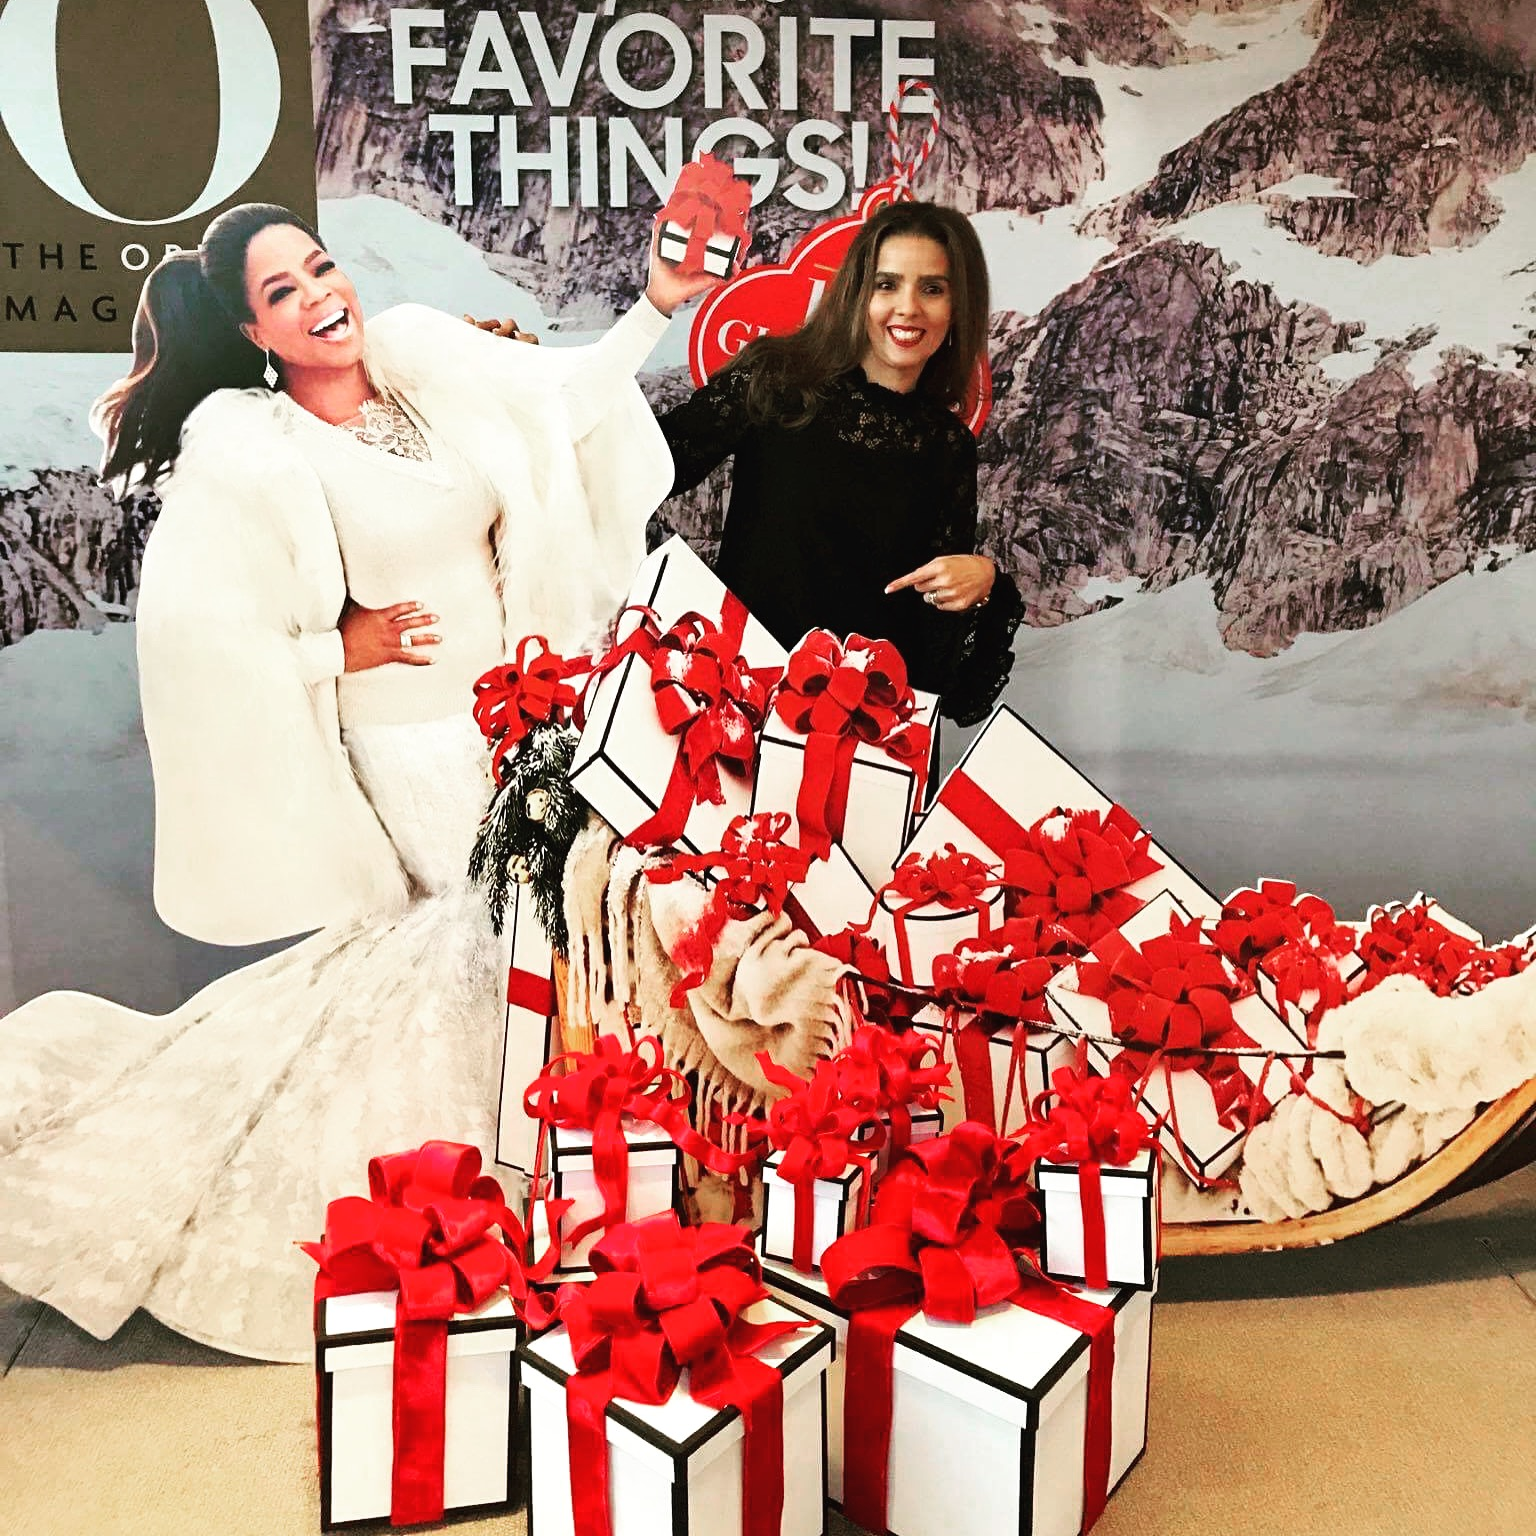 Oprah's favorite things party